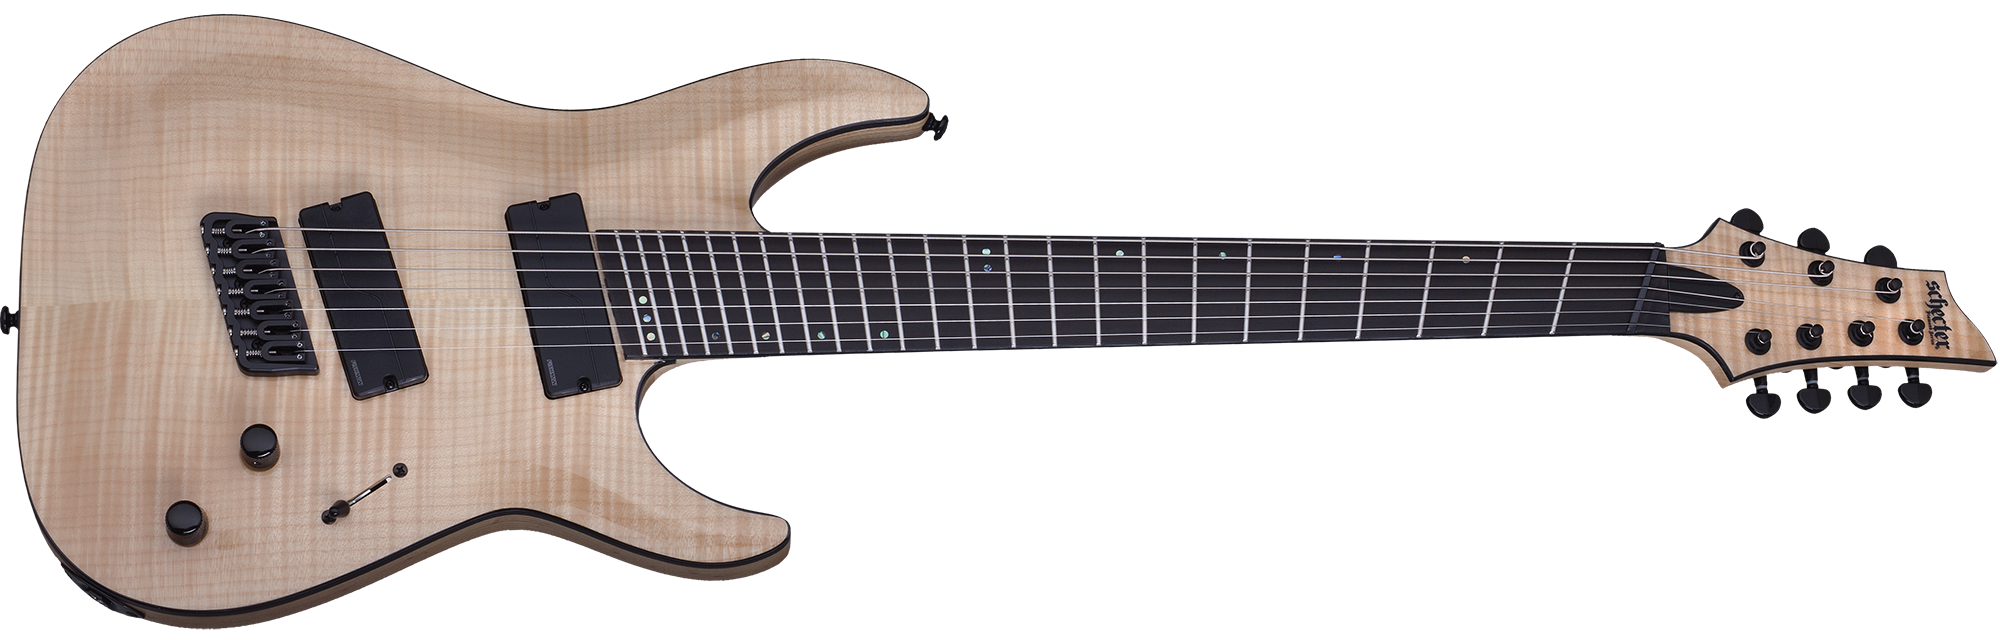 C-7 Multiscale SLS Elite Gloss Natural (GNAT) SKU #1366